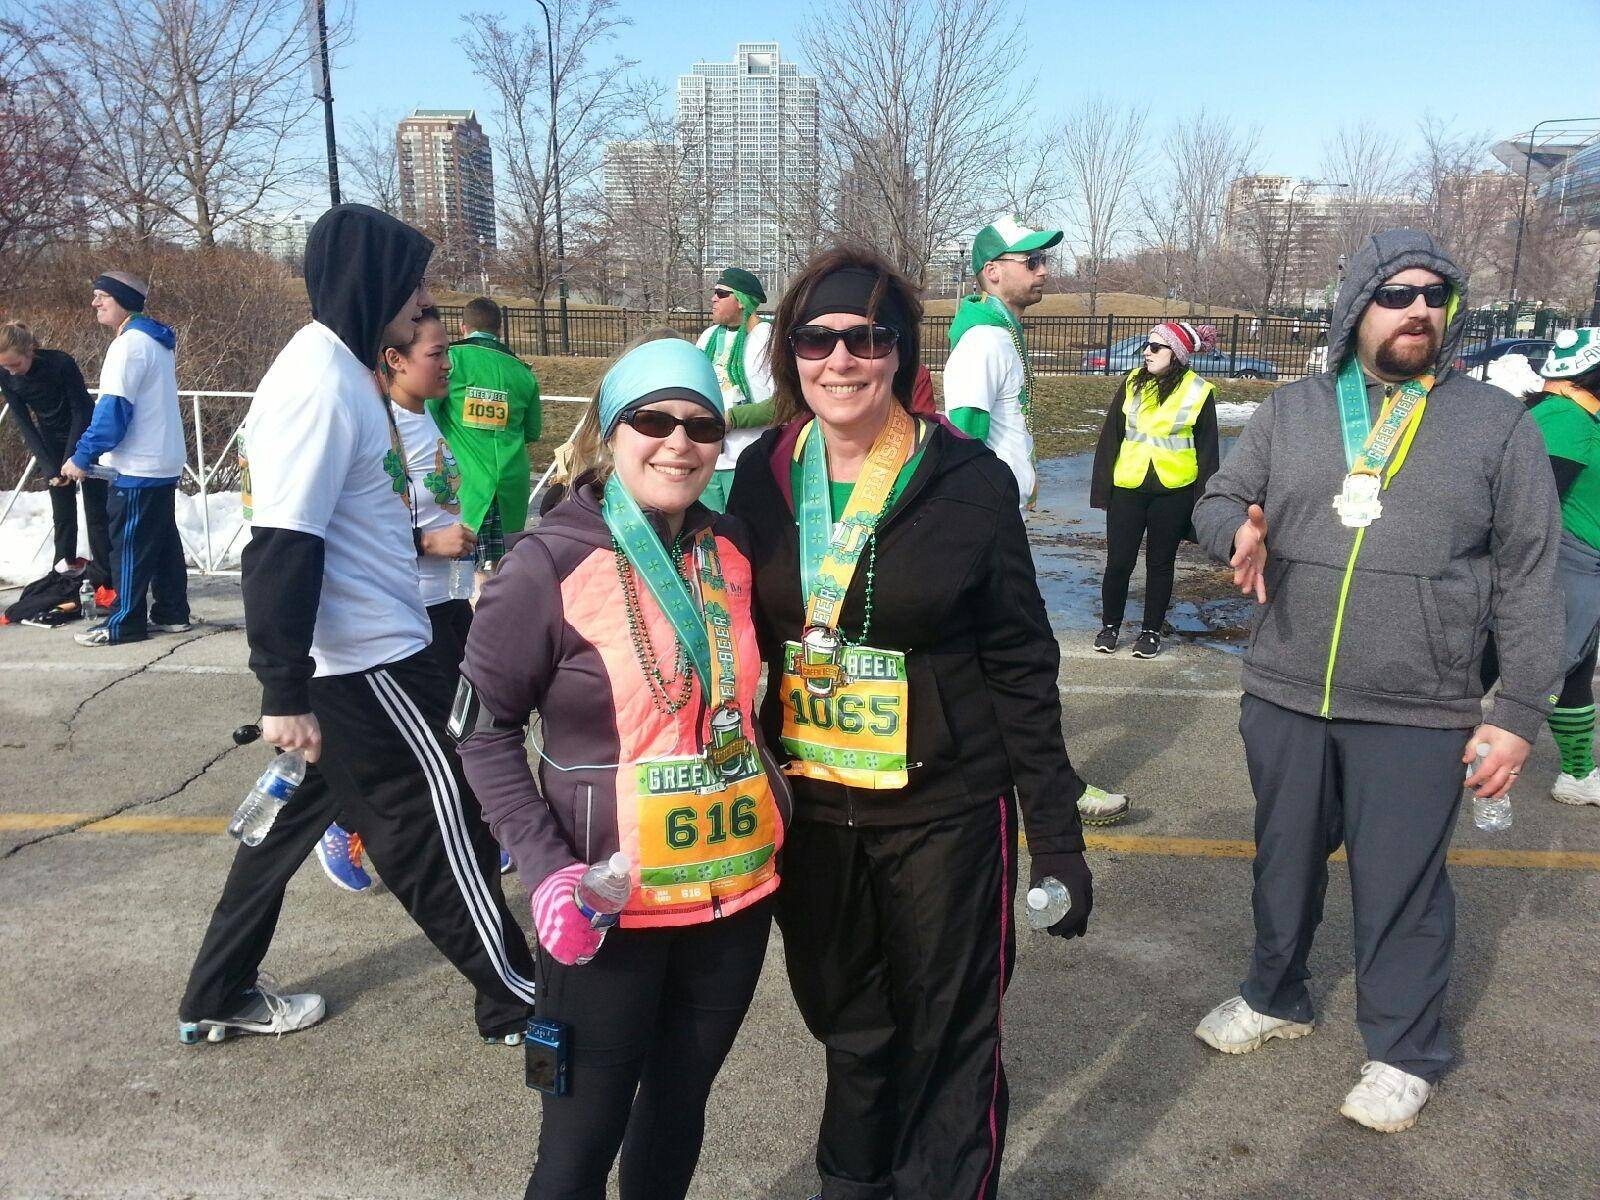 Members of JourneyCare Team Mojo took part in the recent St. Paddy's Day run/walk.